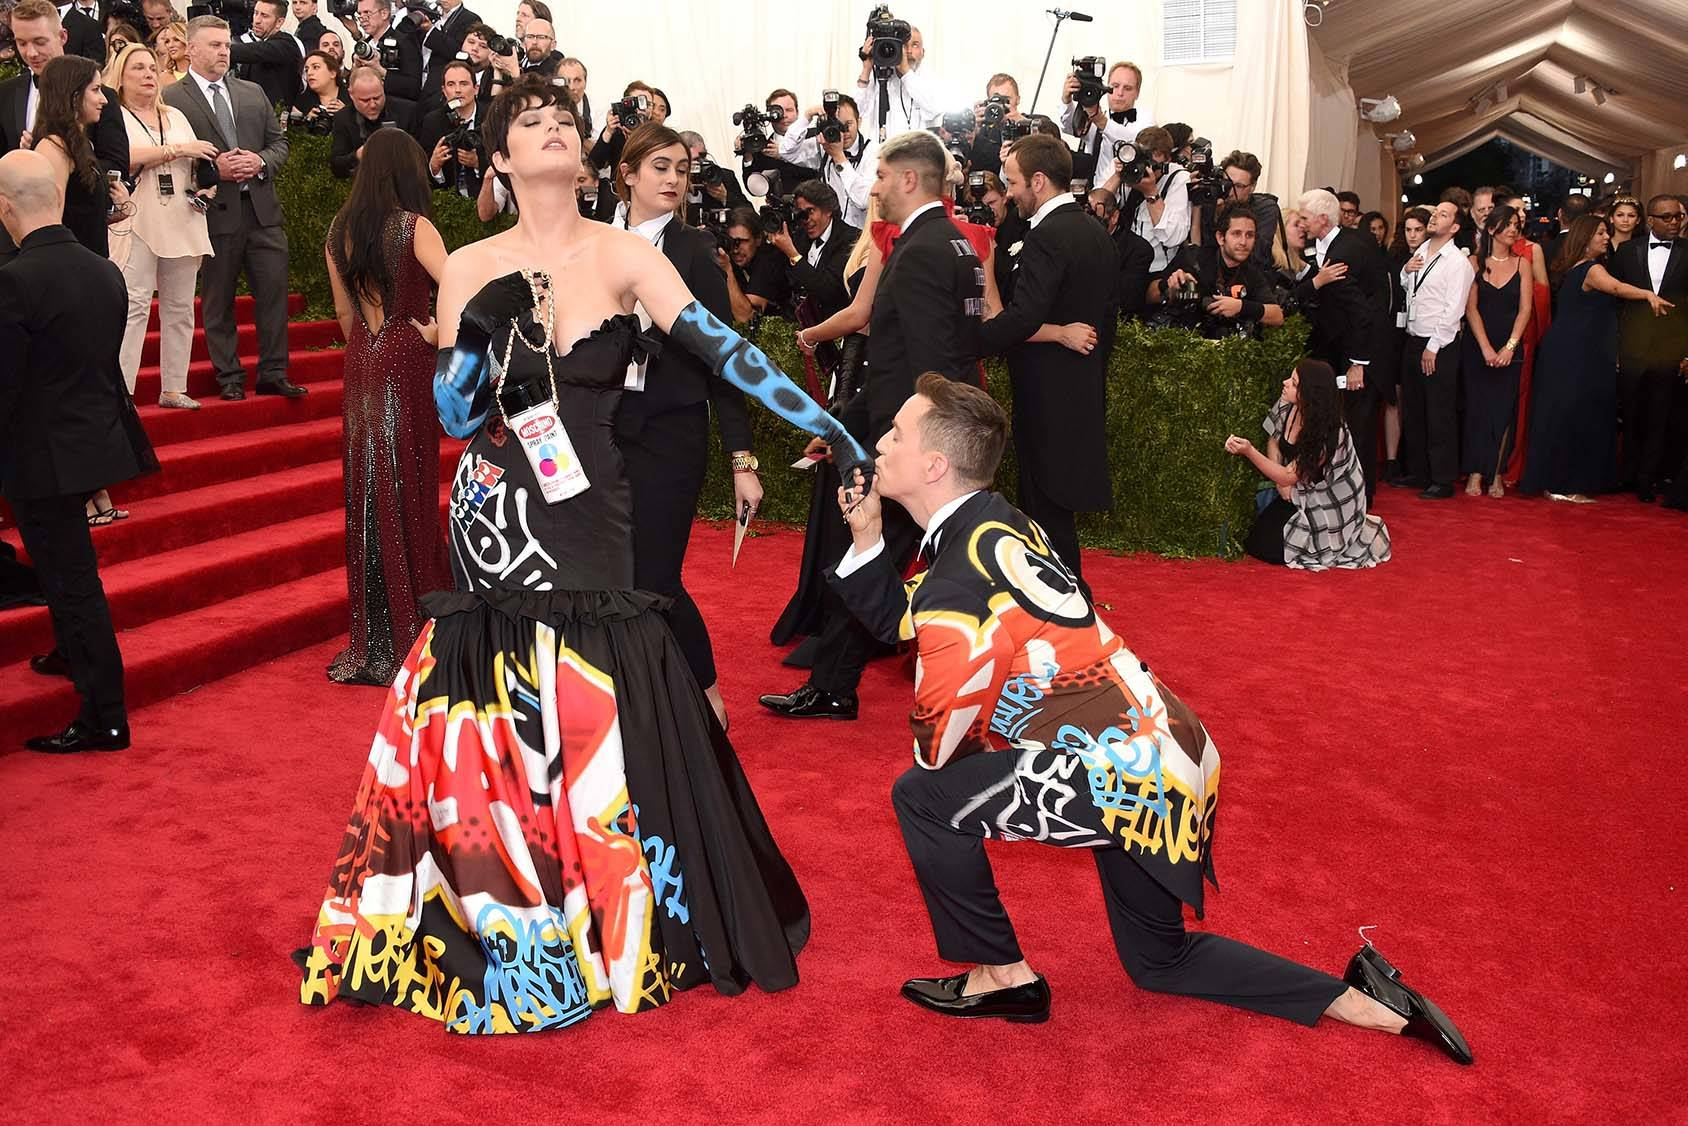 Katy Perry and Jeremy Scott at the Met Gala.